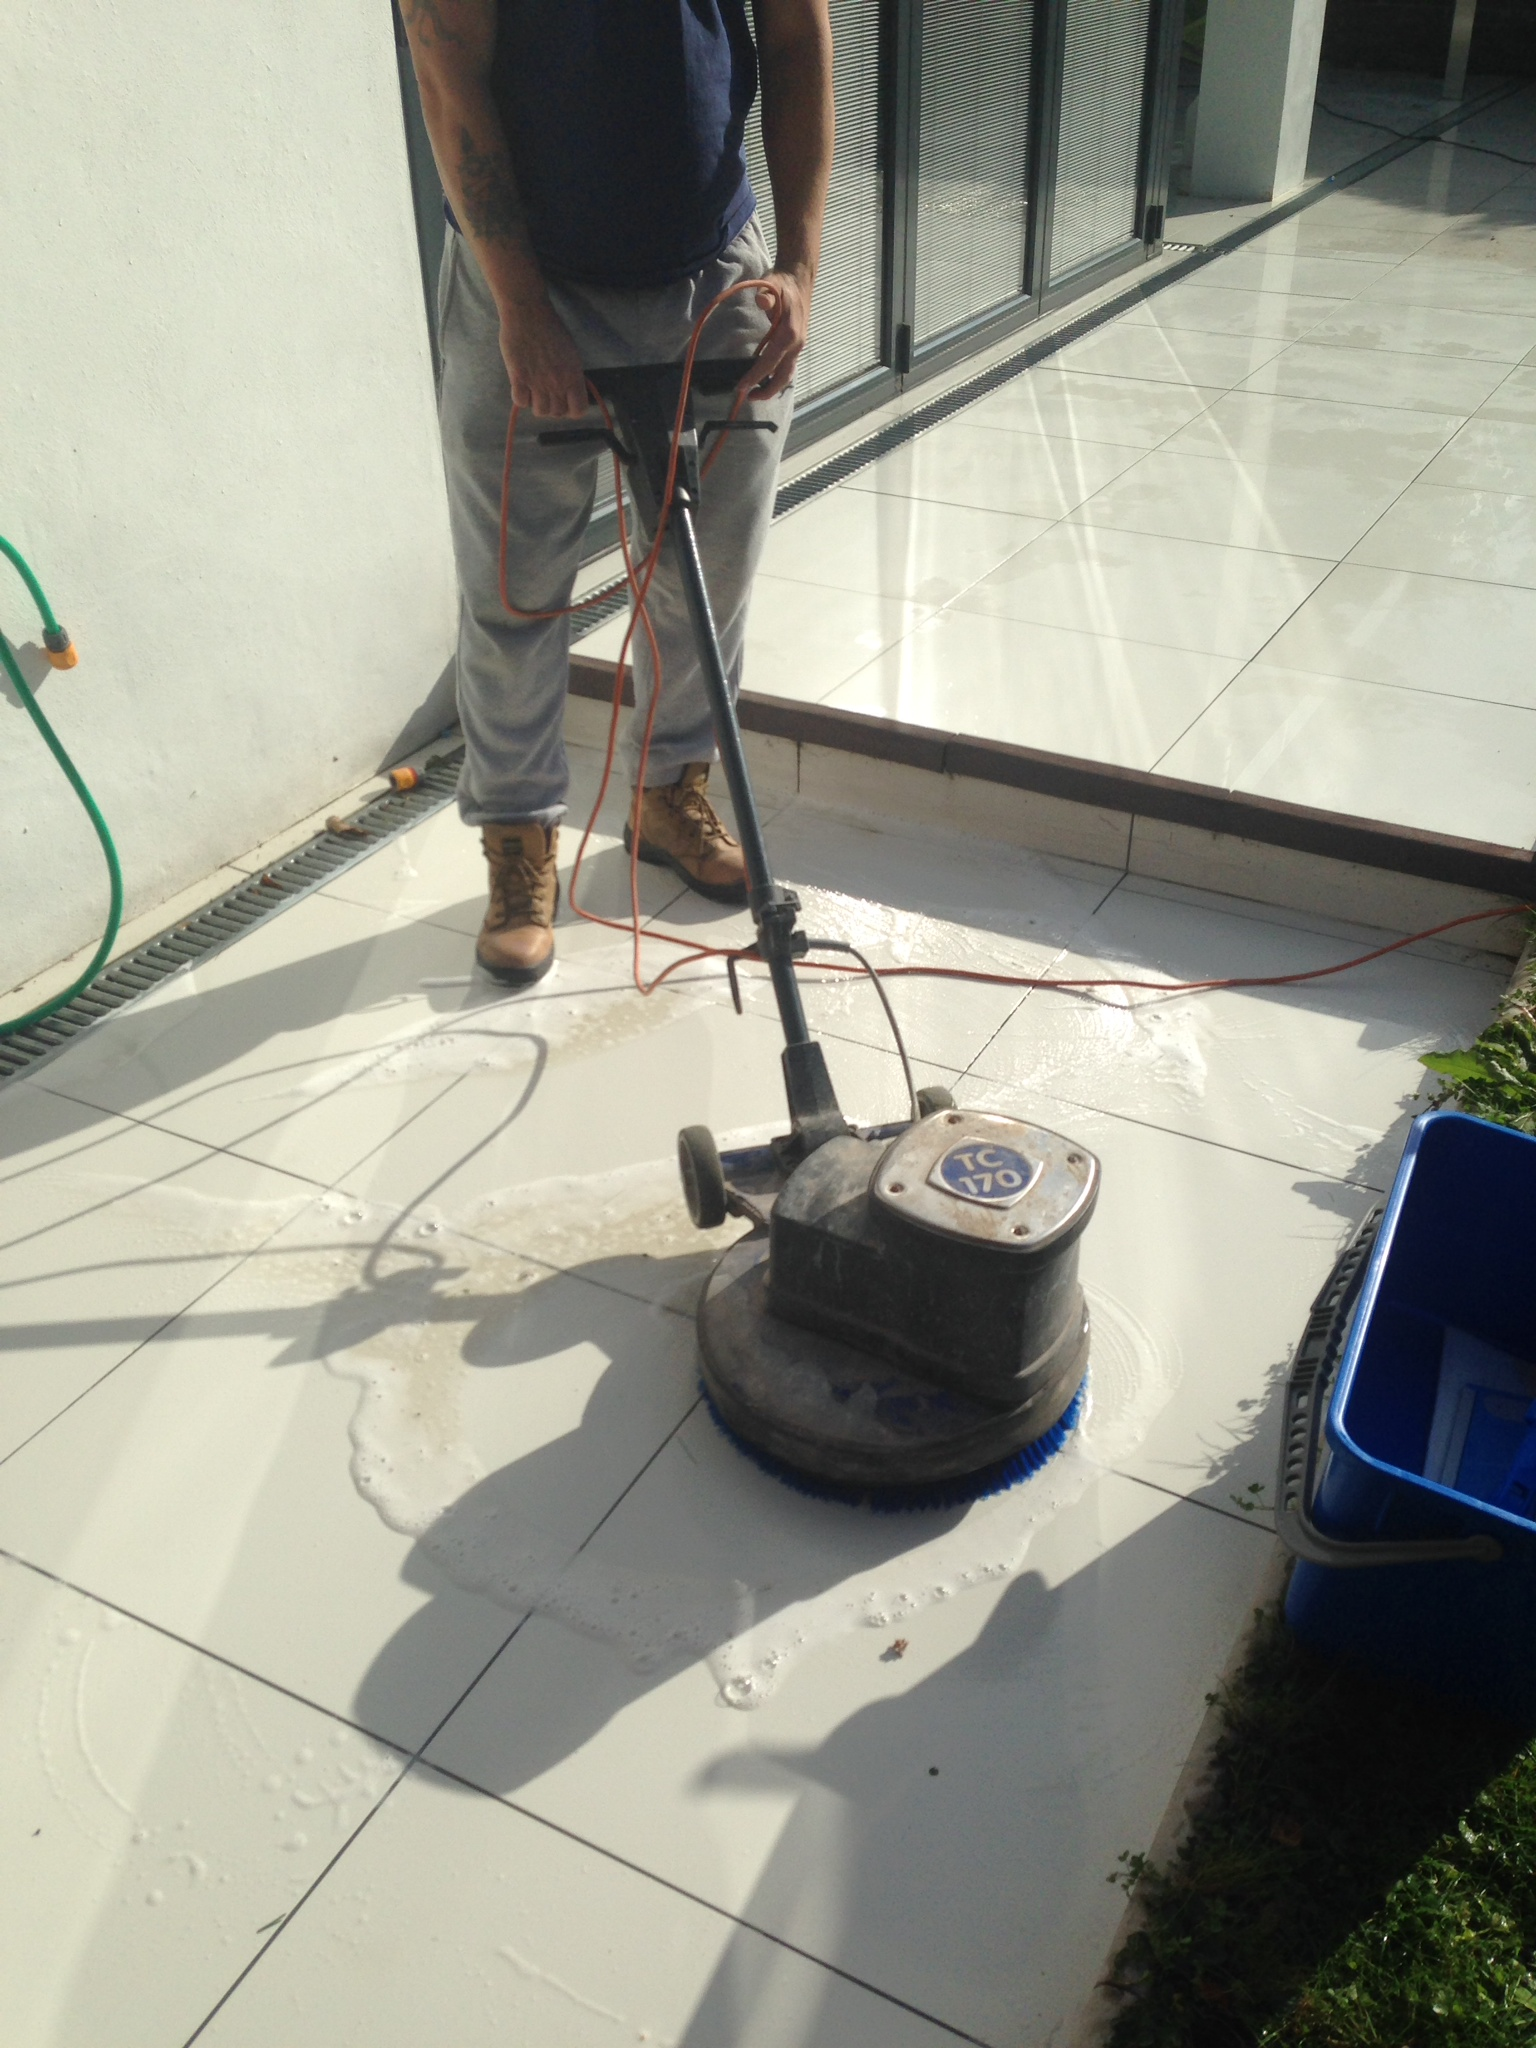 Applying ant slip to a shiny porcelain patio east surrey tile doctor applying anti slip to shiny slippery porcelain tiles in ashtead33 dailygadgetfo Image collections